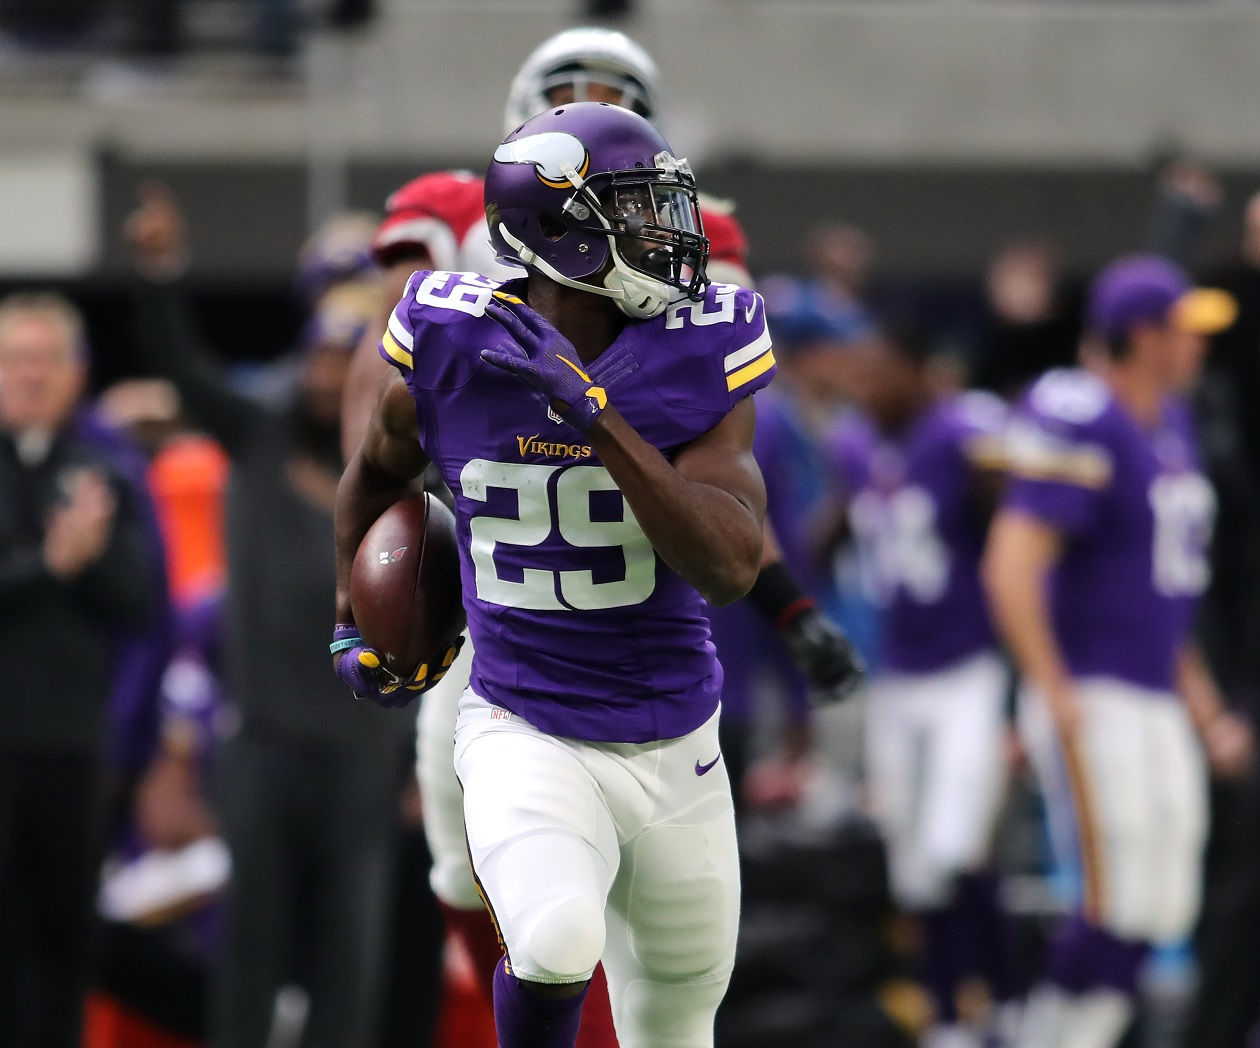 Xavier Rhodes agrees to five-year extension with Vikings